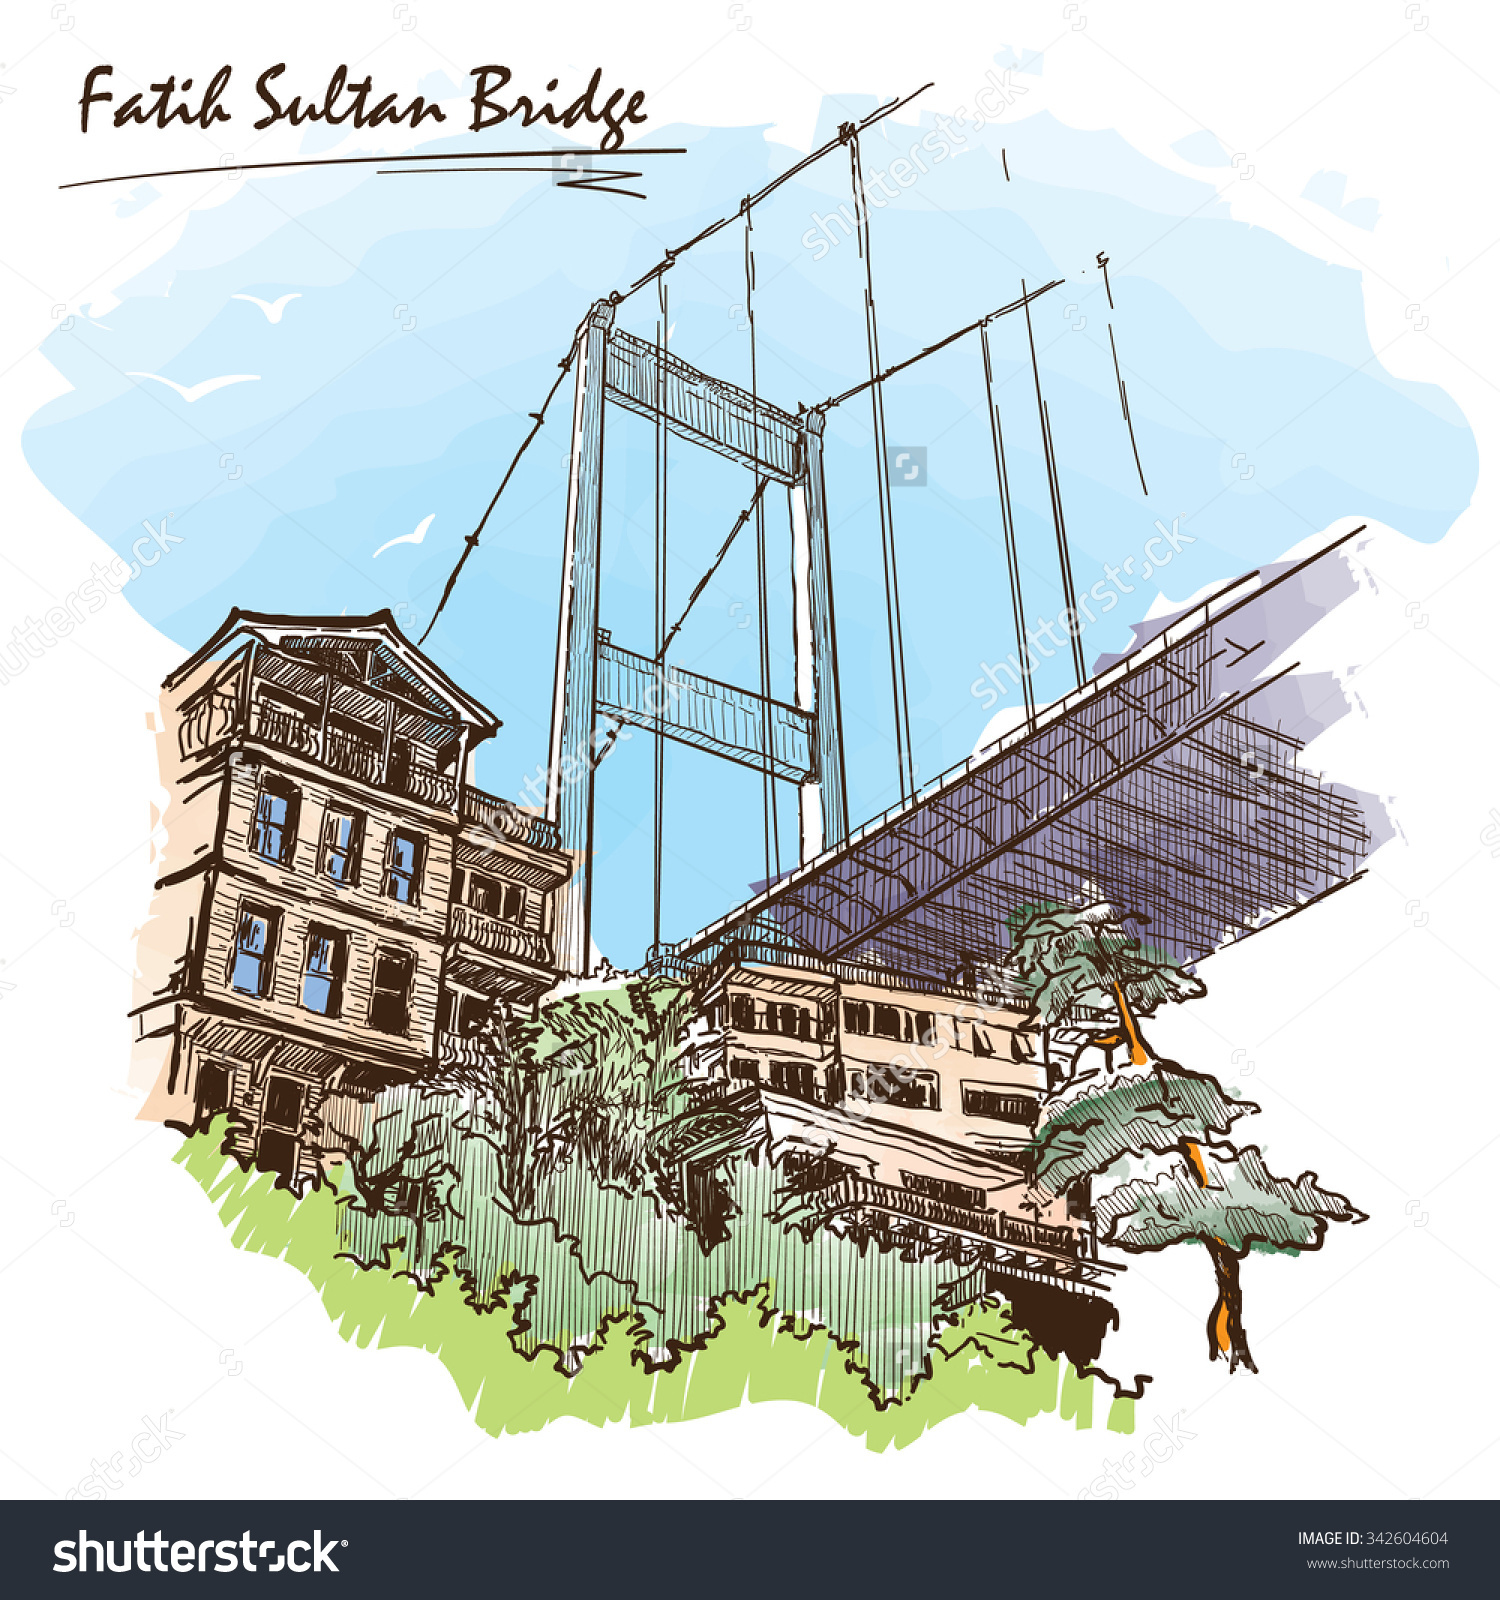 View Fatih Sultan Mehmet Suspension Bridge Stock Vector 342604604.